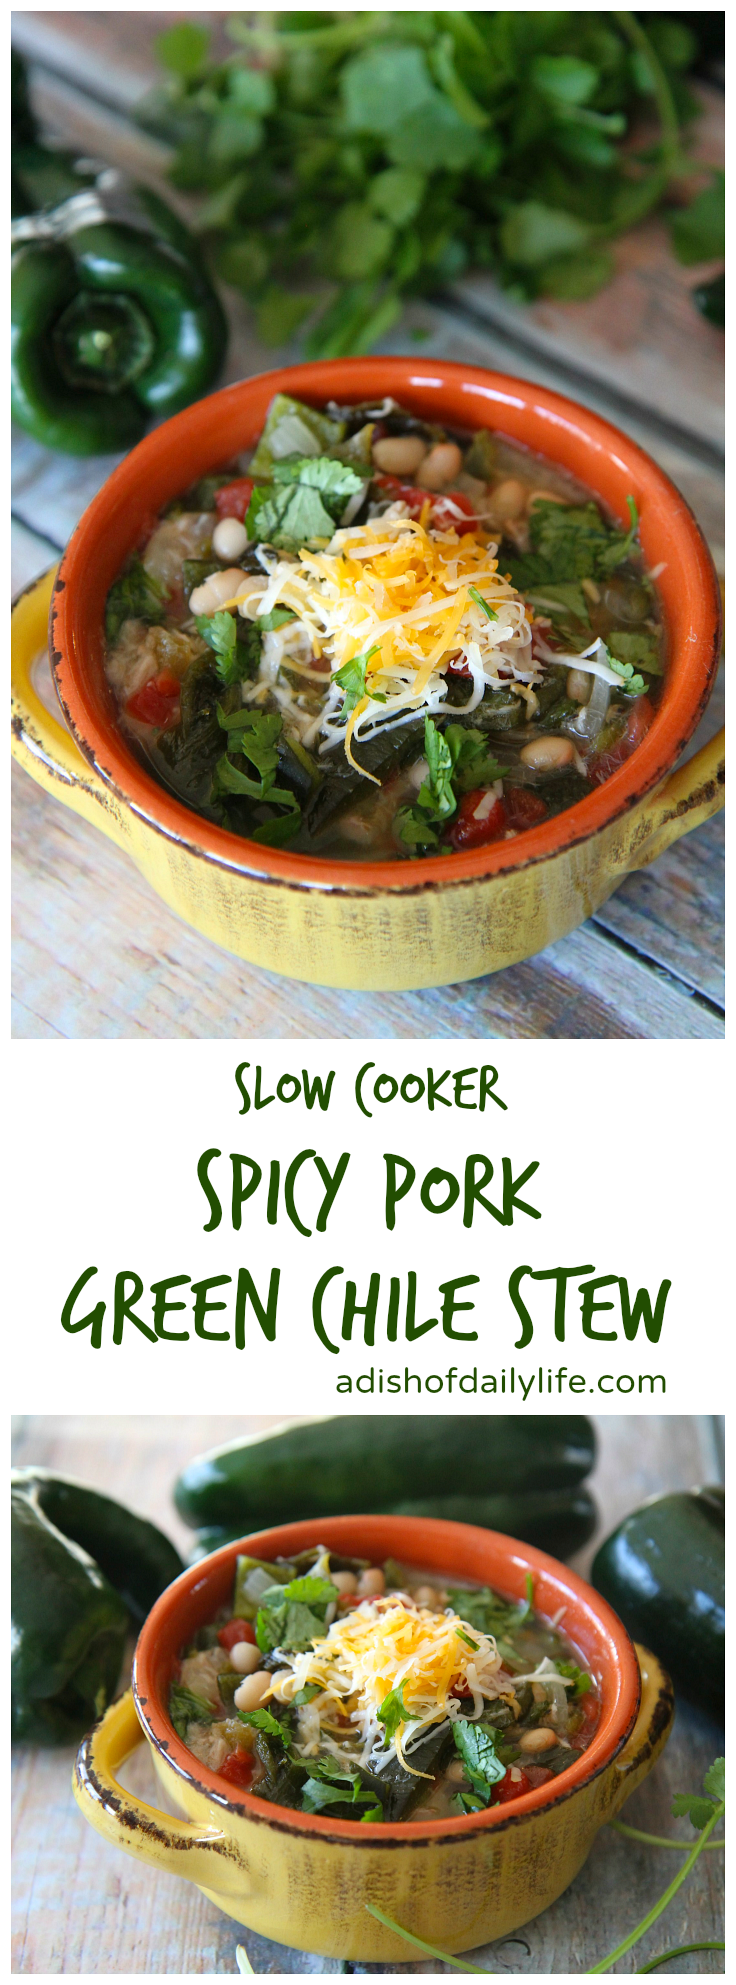 This hearty Slow Cooker Spicy Pork Green Chile Stew is great for the game day party crowd as well as weeknight suppers. Follow the recipe as is when cooking for dinner, and you should have enough to freeze for leftovers!